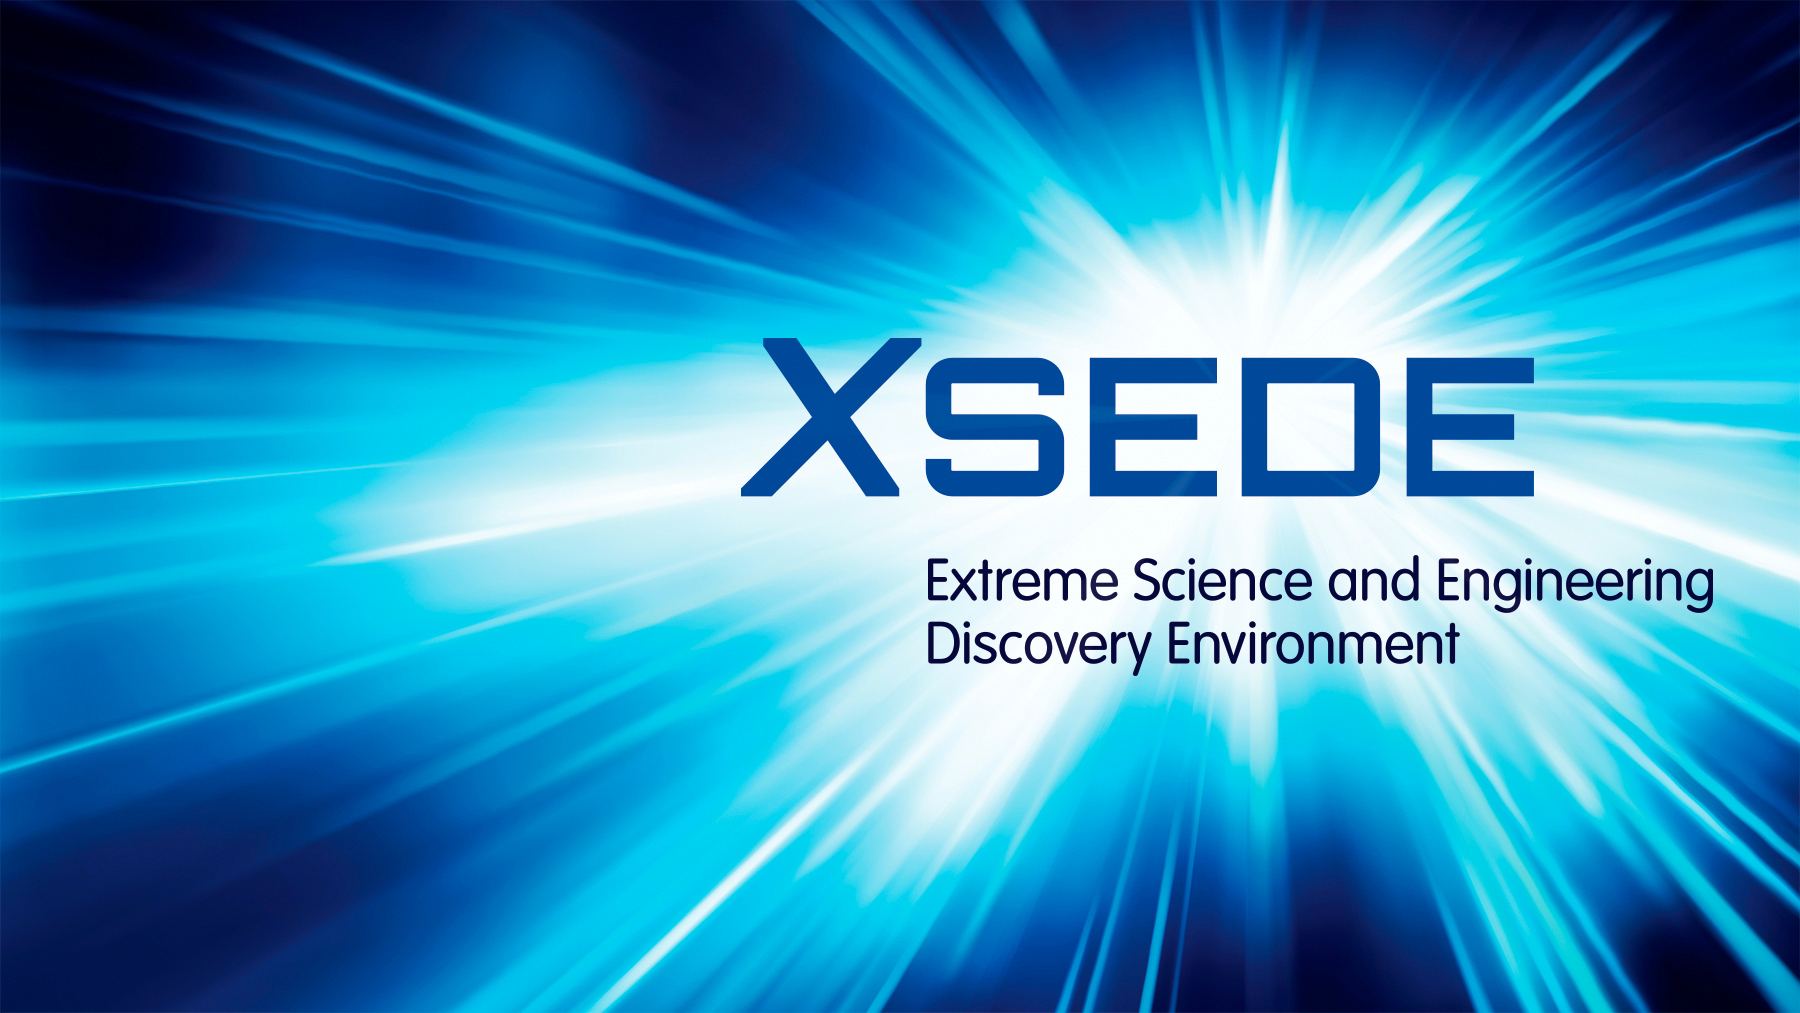 XSEDE: Extreme Science and Engineering Discovery Environment